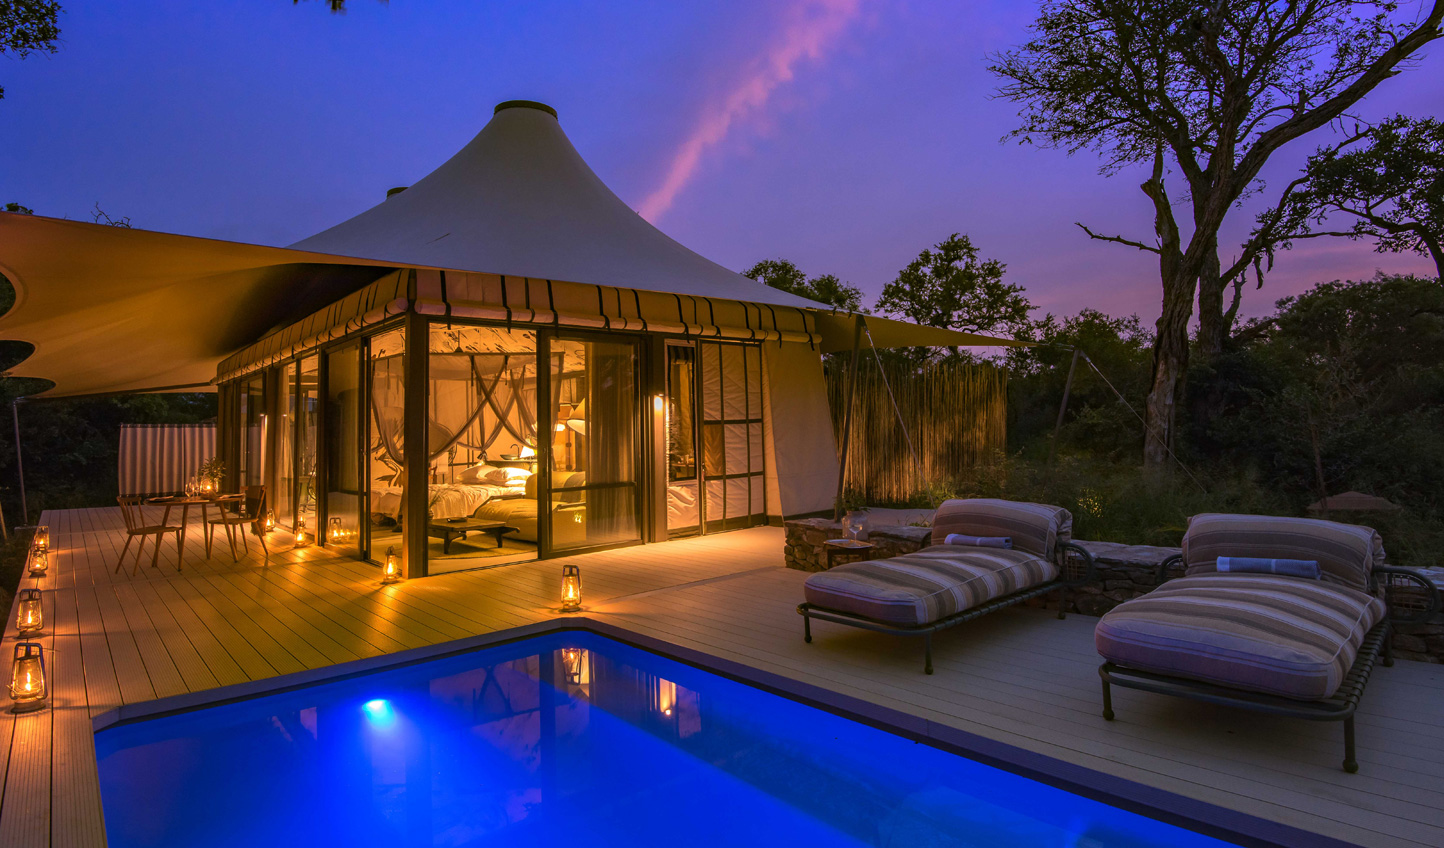 Each tented suite features private terraces and plunge pool